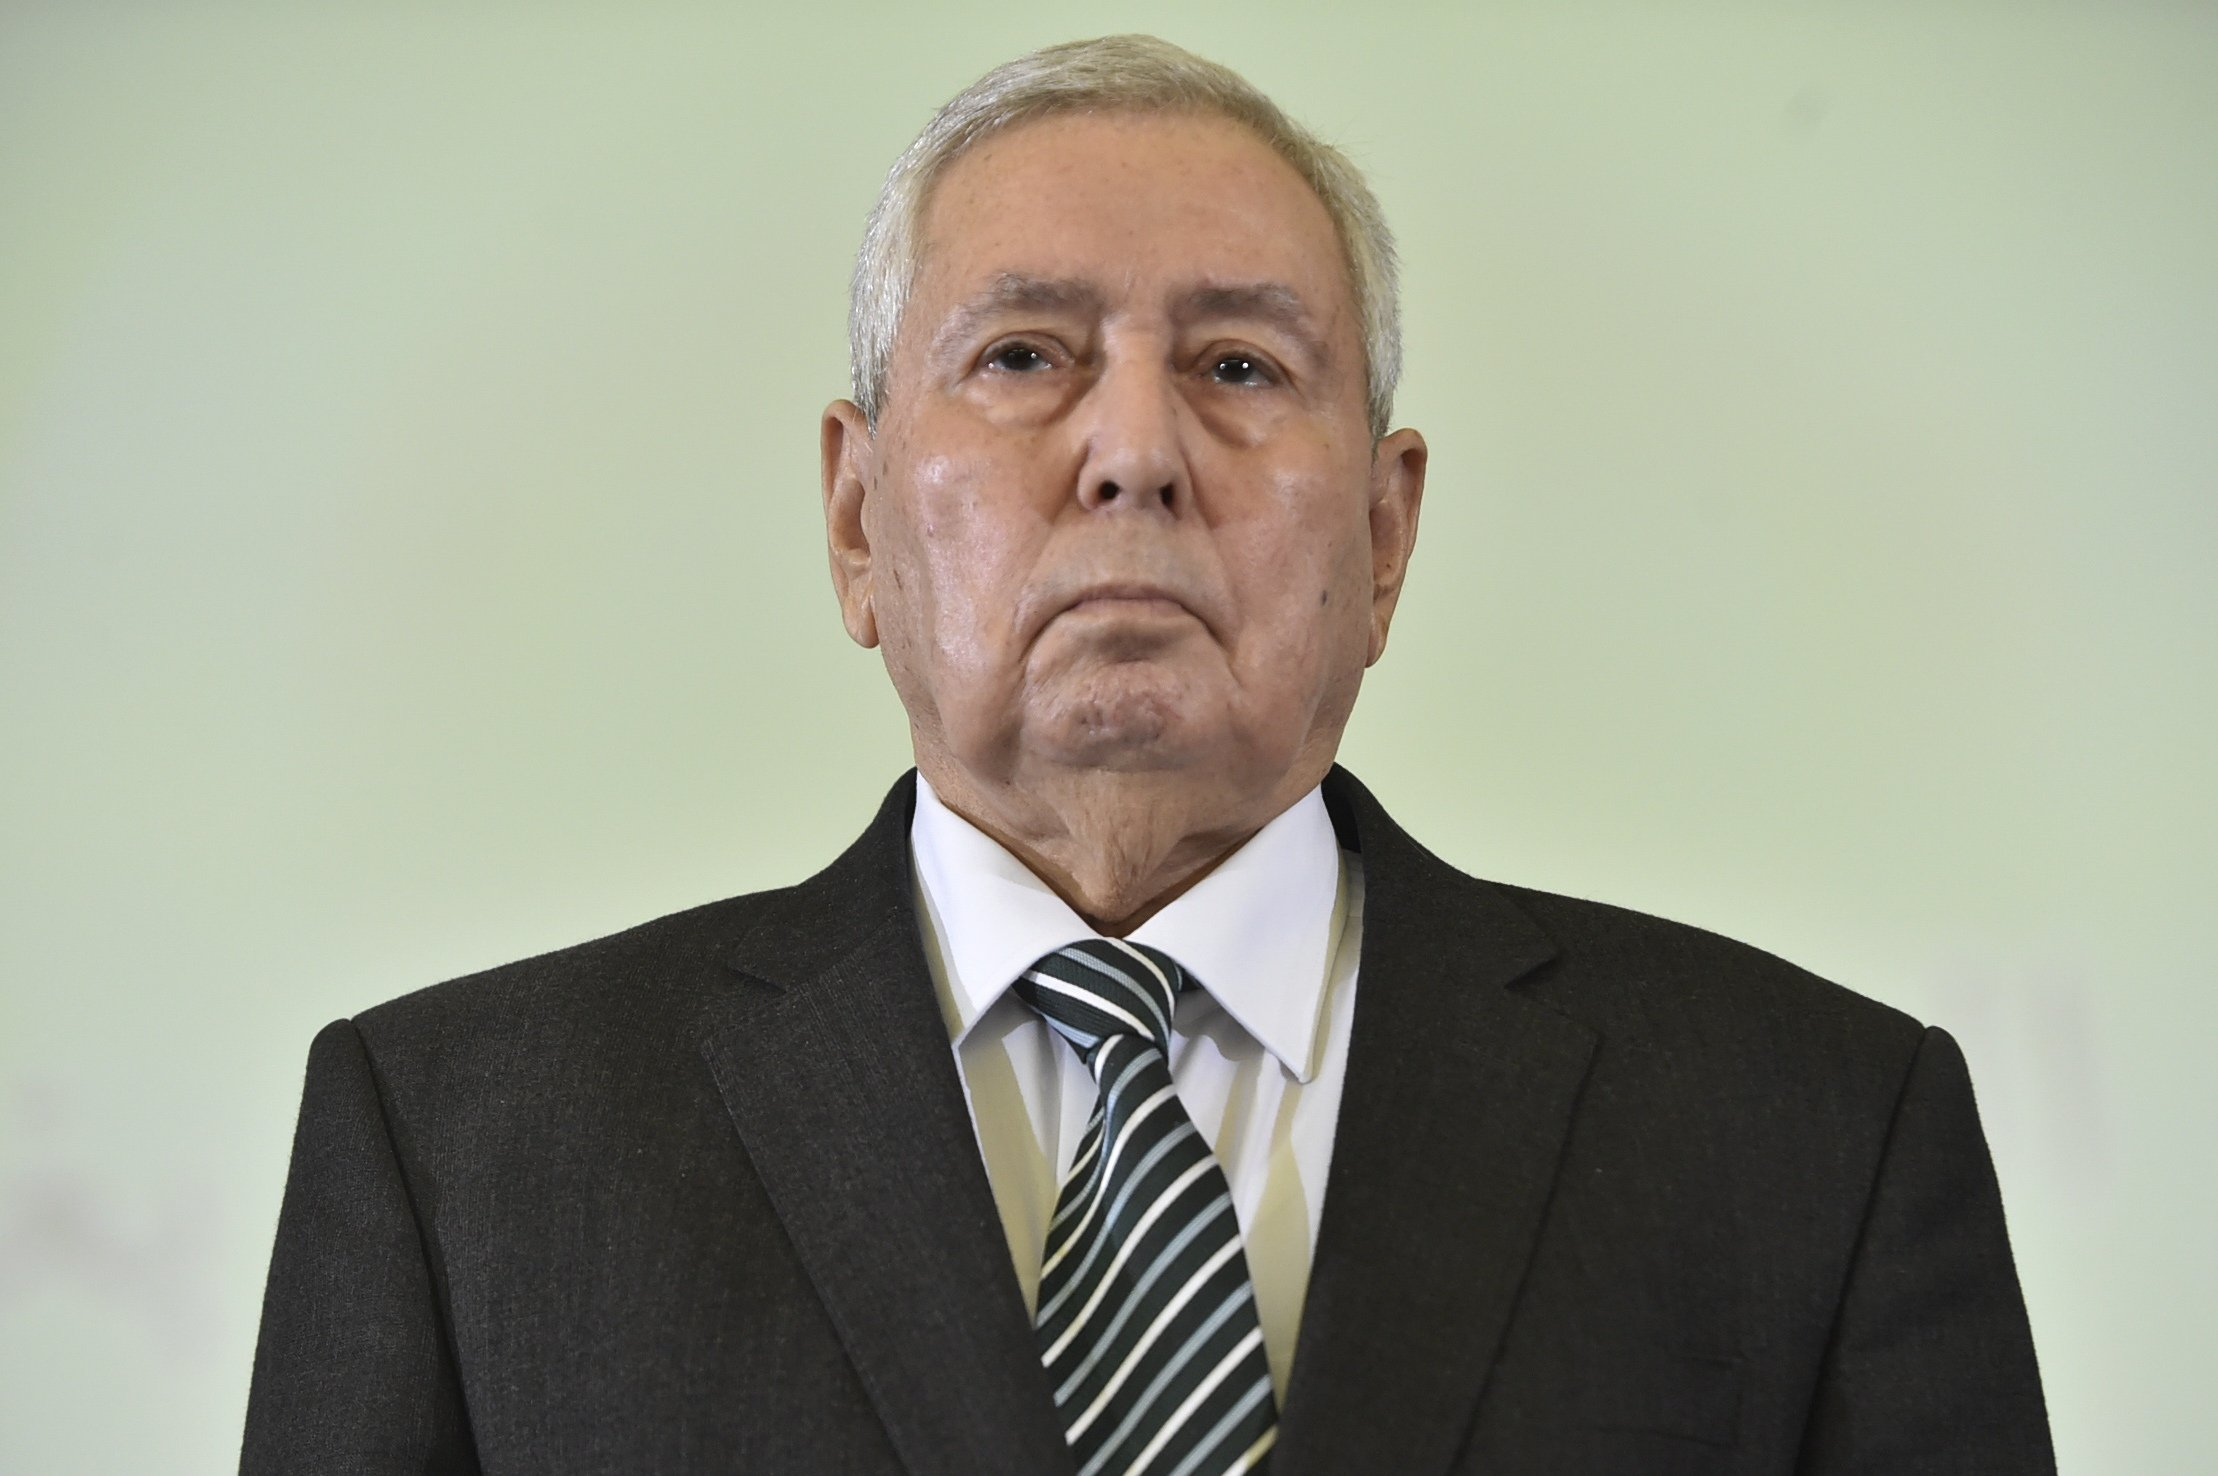 Abdelkader Bensalah has headed the Algerian senate for some 17 years (AFP)